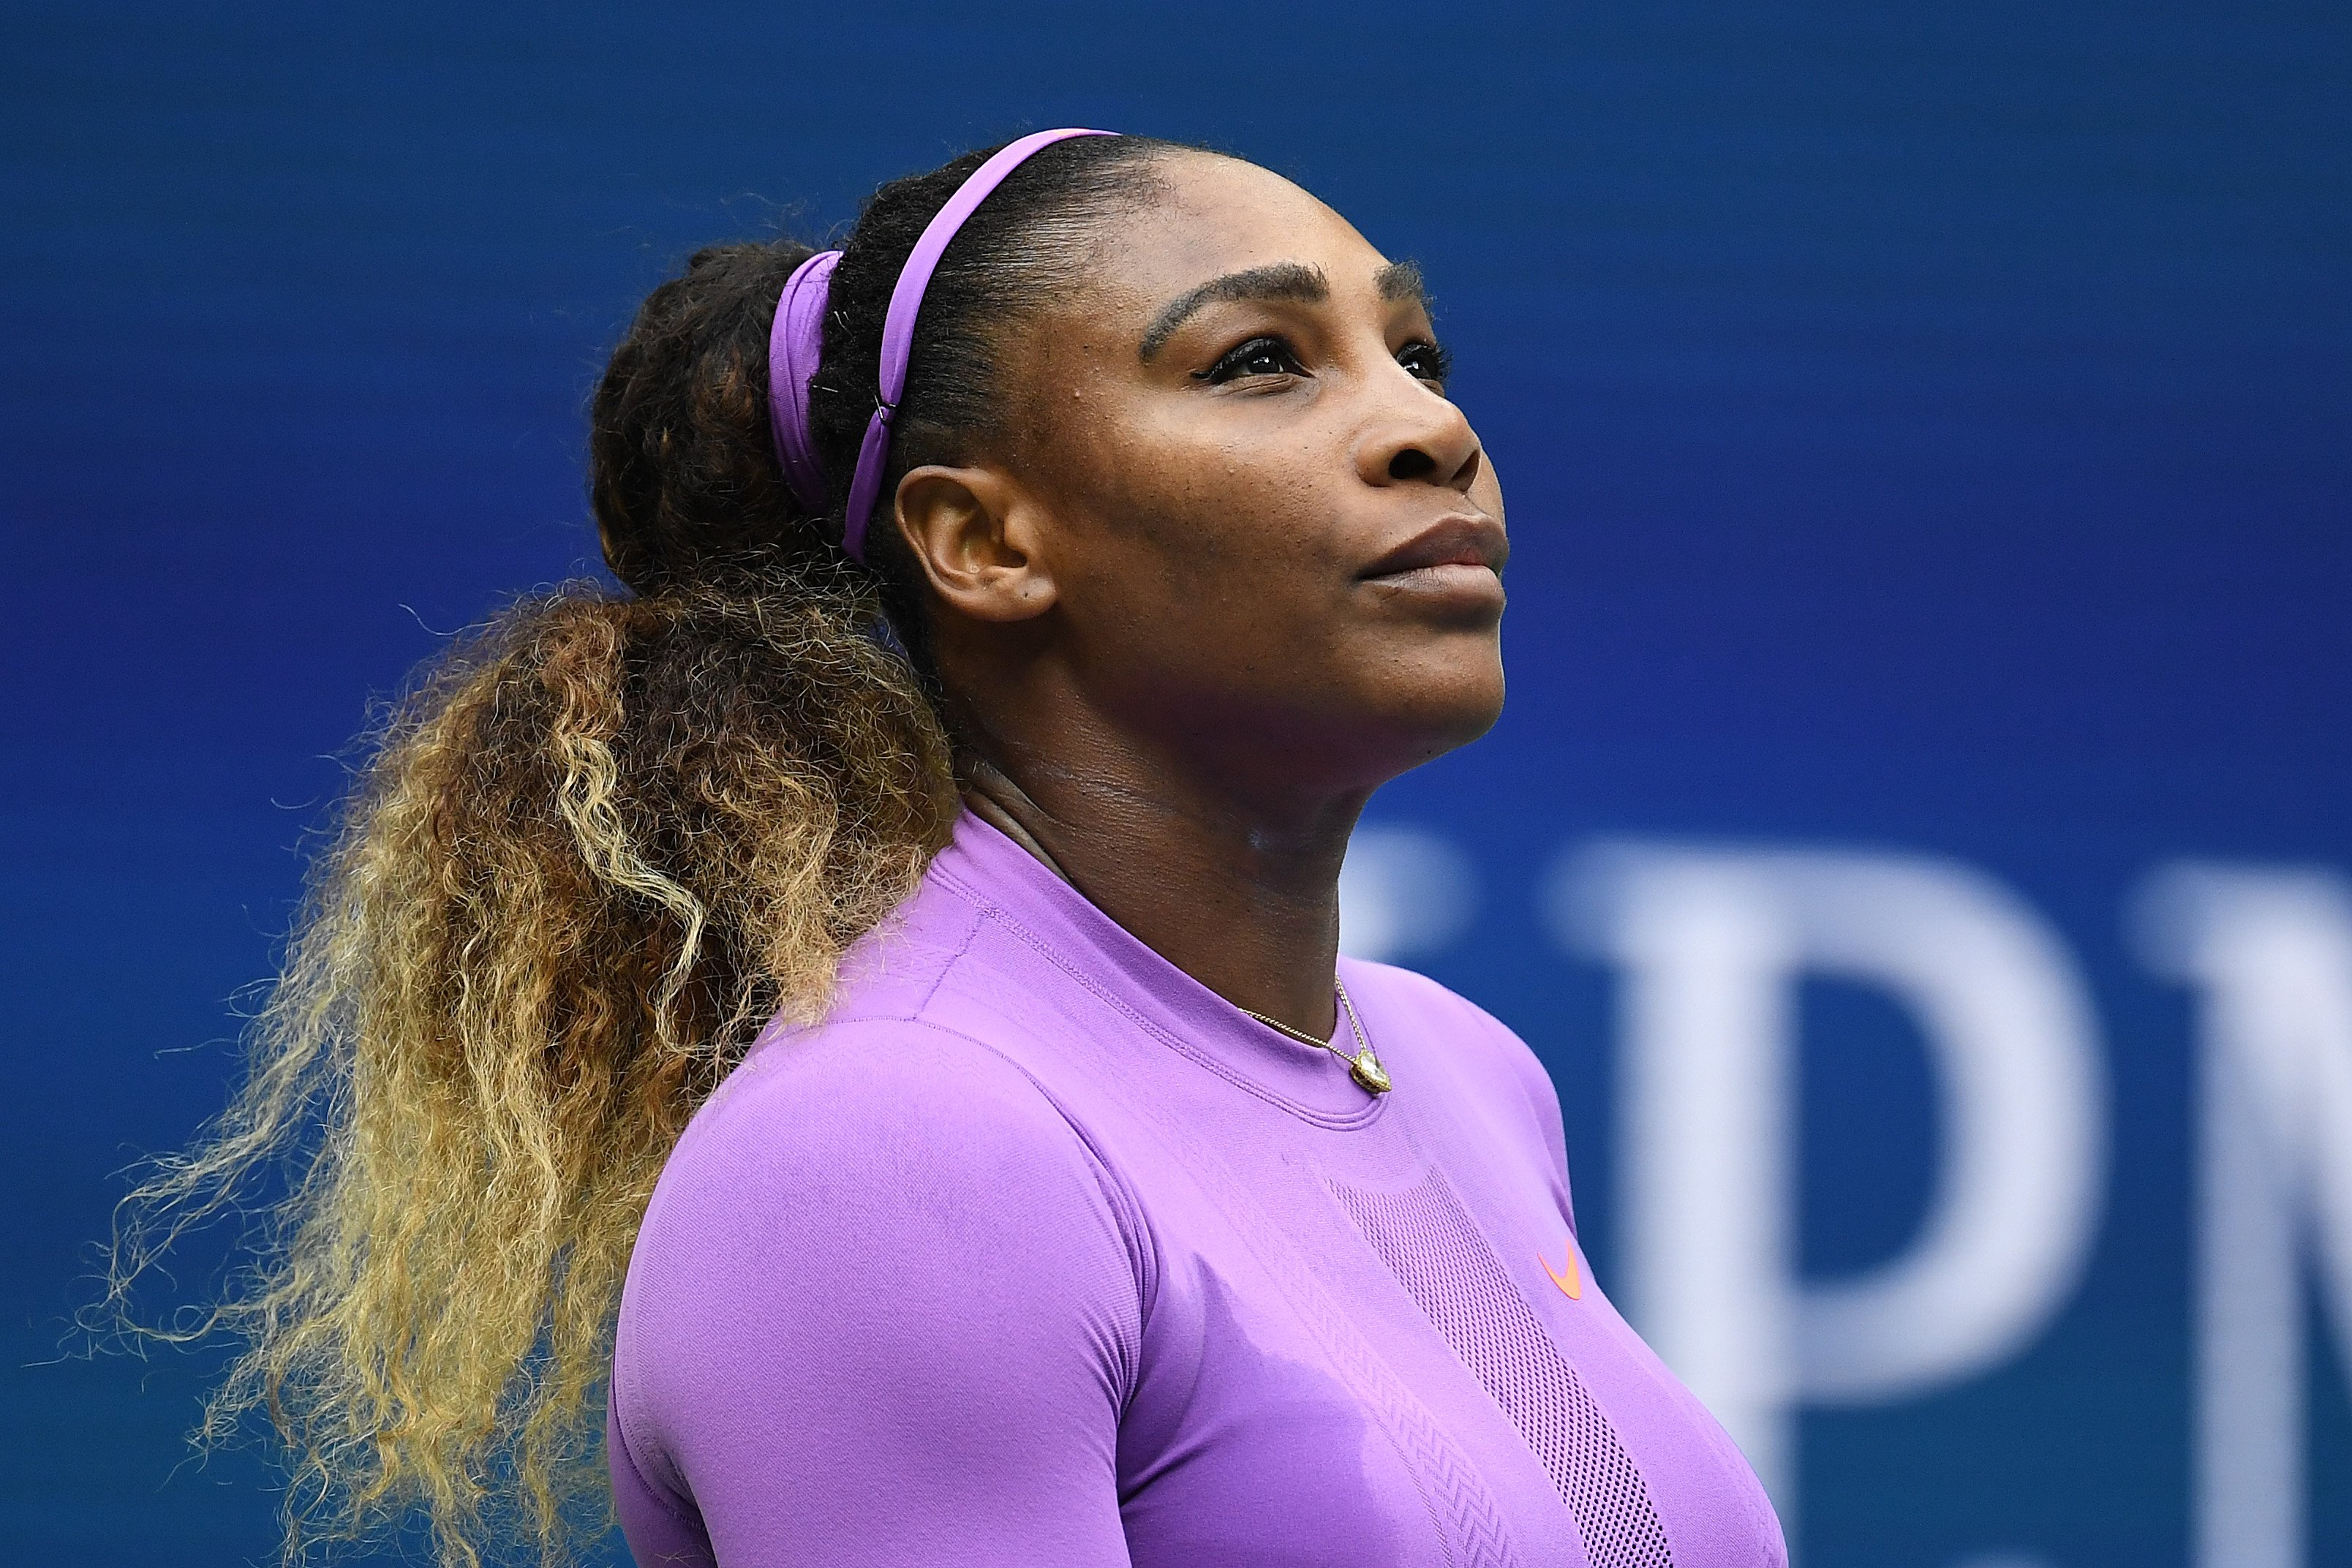 Serena Williams during her Women's Singles final match against Bianca Andreescu at the 2019 US Open on September 07, 2019 in Queens, New York. | Source: Getty Images